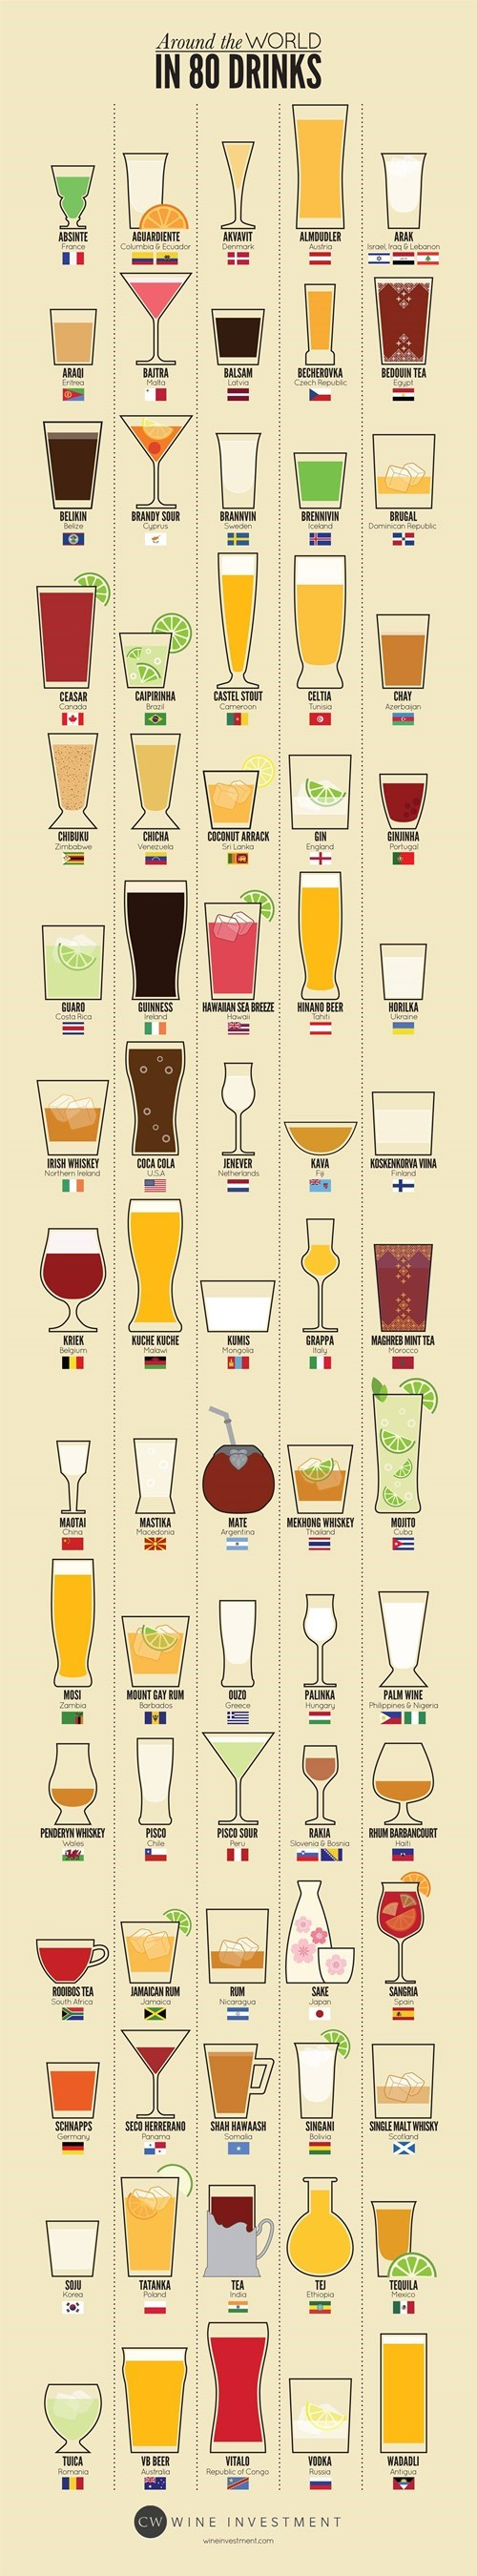 countries drinks funny the world - 7925795840